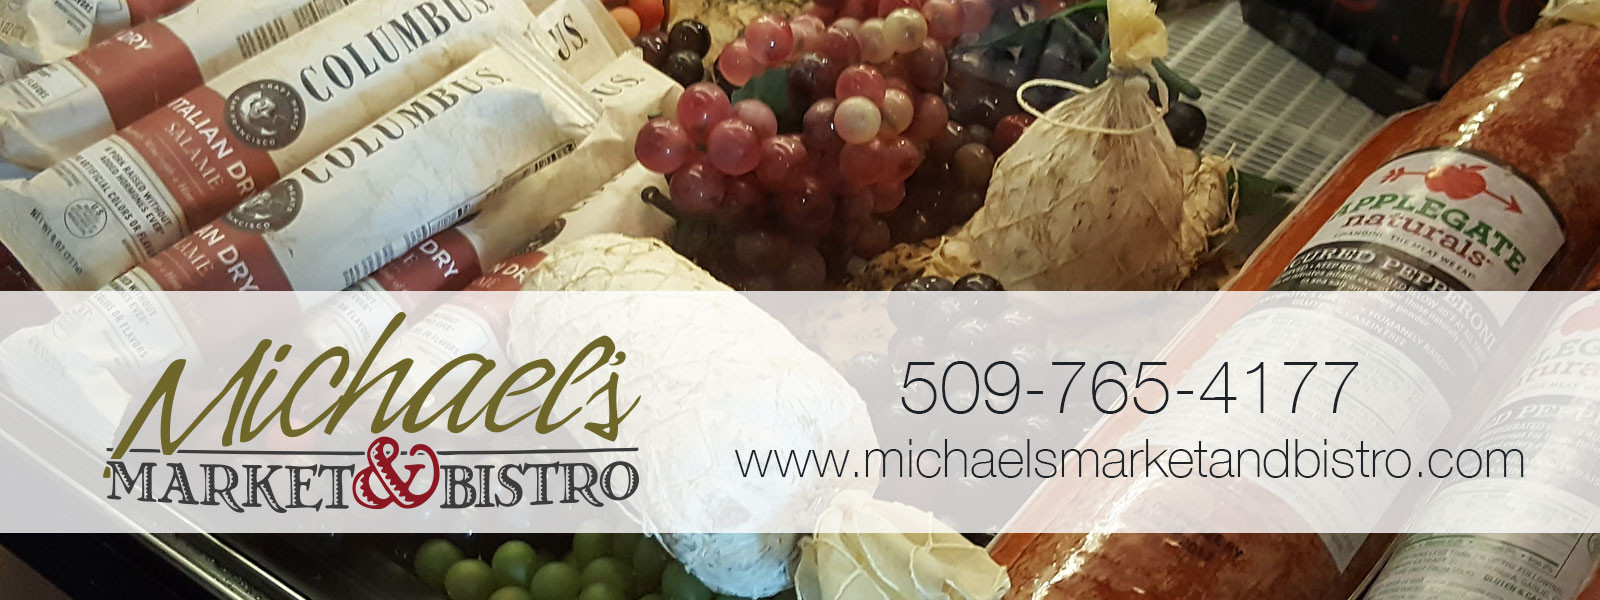 Michaels Market and Bistro